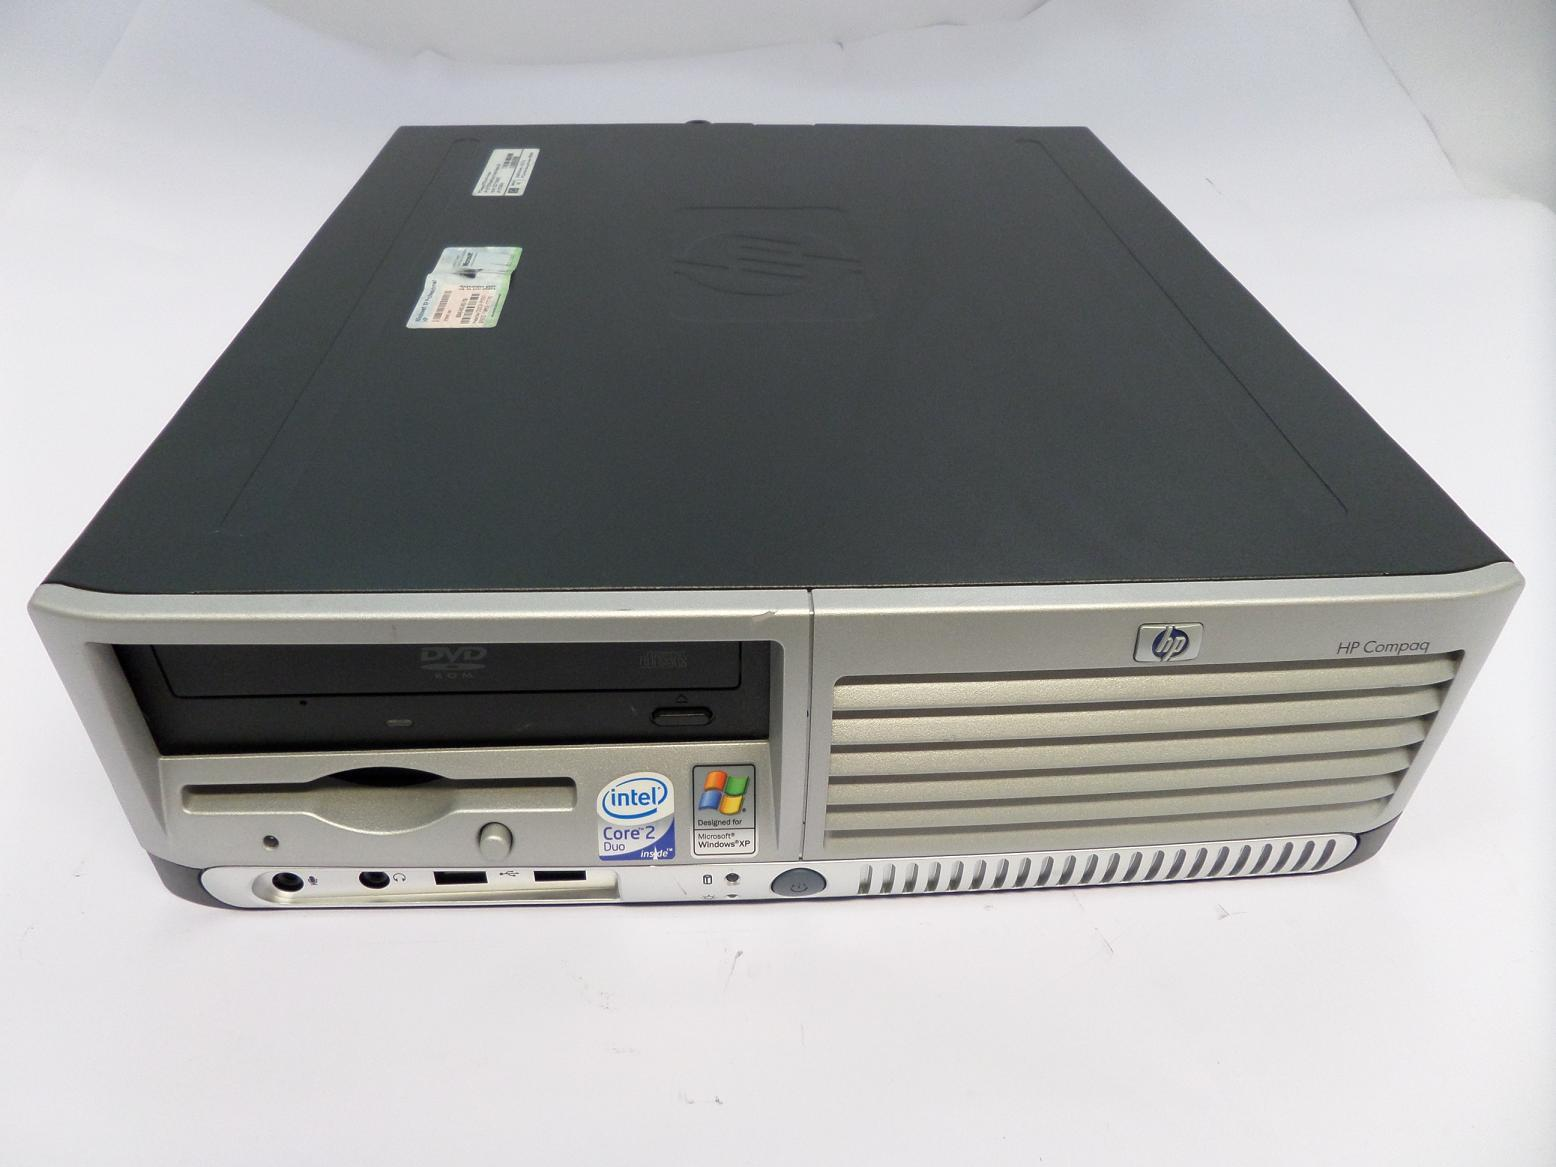 HP Comp DC7700.jpg